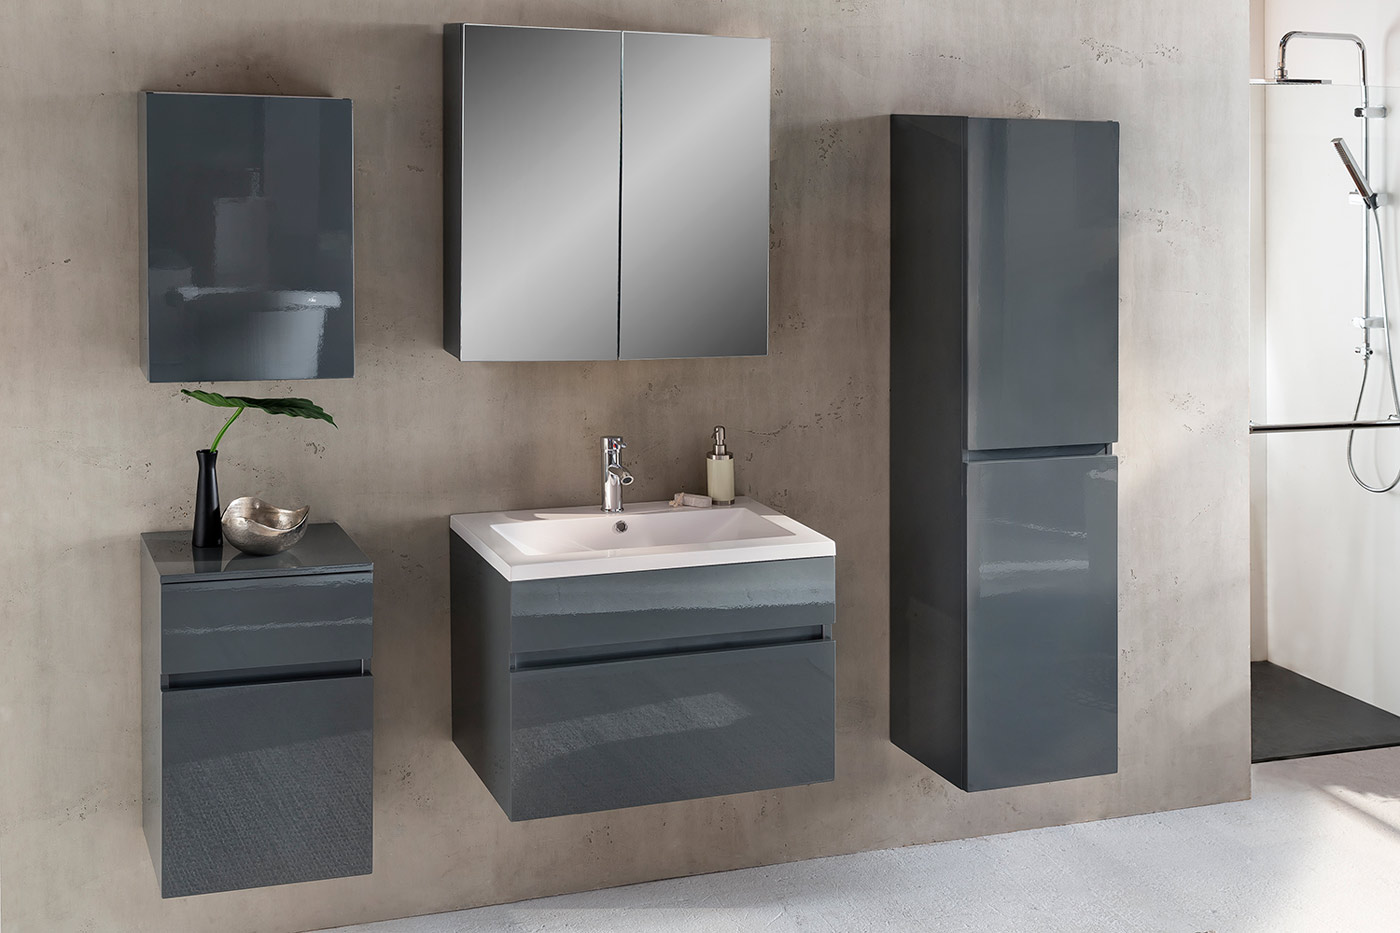 sam badezimmerm bel parma 5tlg grau hochglanz 70 cm auf. Black Bedroom Furniture Sets. Home Design Ideas